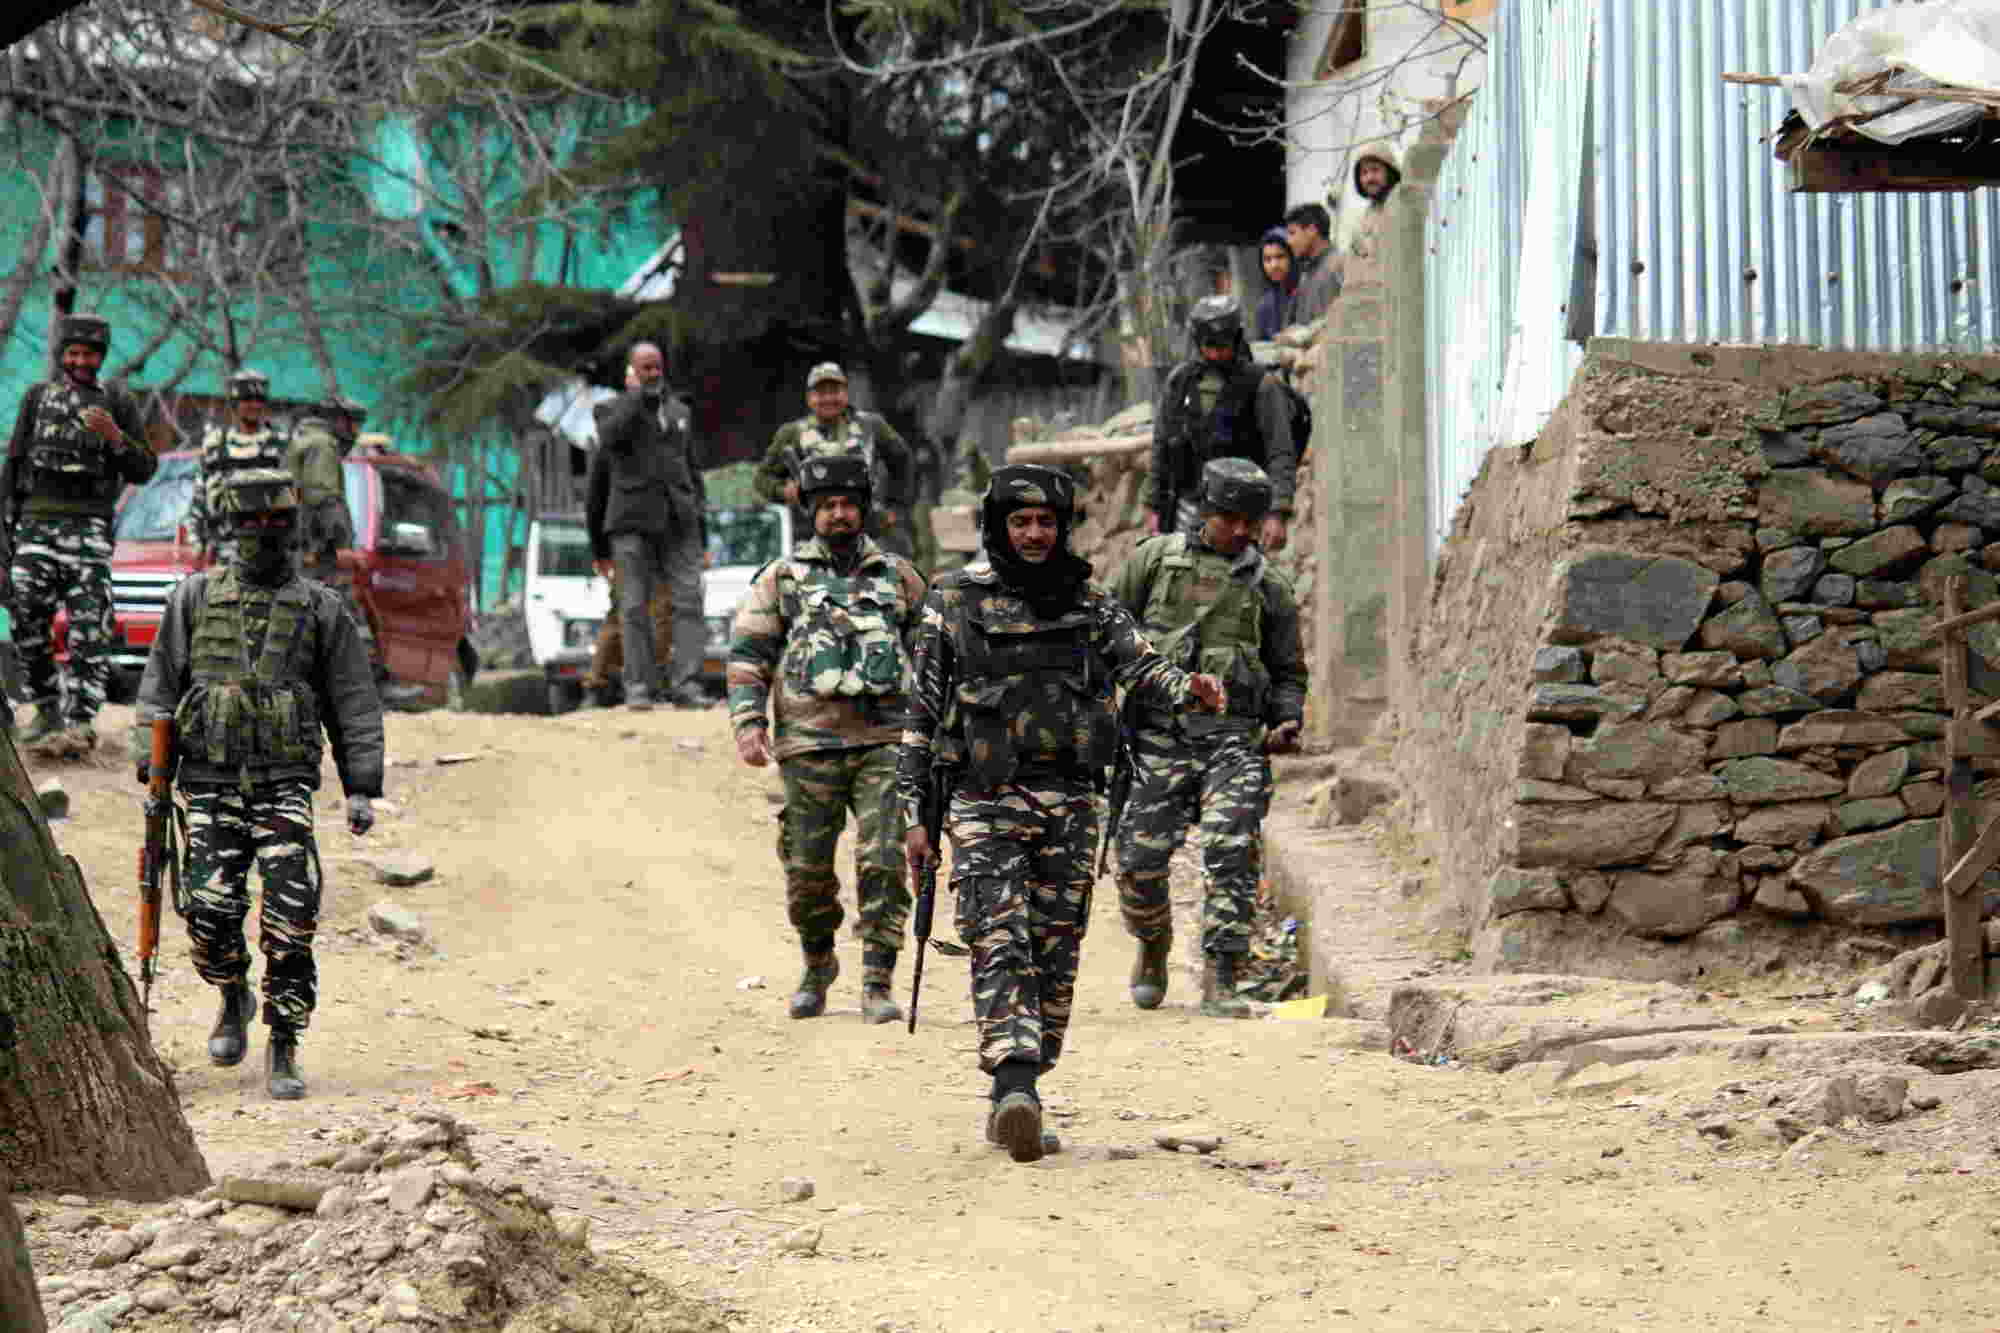 The ISI operatives, the Pakistani army and some militant commanders are now known to have deposited cash in different bank accounts of certain Nepal-based traders including jewellers and shopping mall owners. The Nepal businessmen through their couriers have been engaging youths in the villages of Bihar and Uttar Pradesh, bordering Nepal, and passing to them cash between Rs 2-5 lakh in the Indian currency